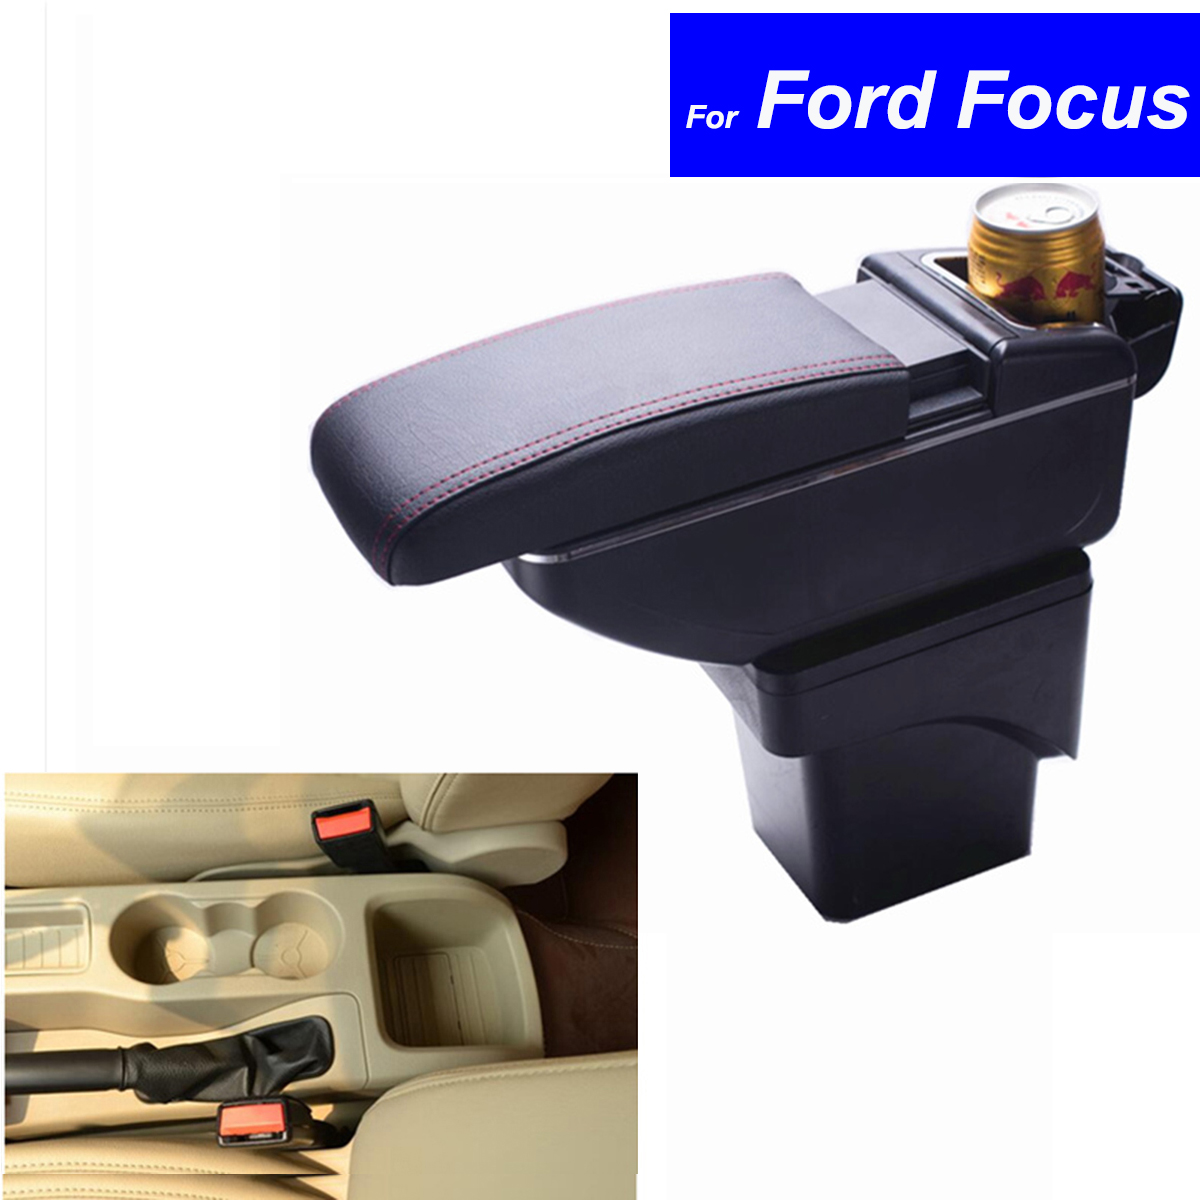 Leather Car Center Console Armrests Storage Box for Ford Focus 2007 2008 2009 2010 2011 2012 2013 2014 Auto Parts Free Shipping high quality black storage box armrest center console for ford focus 2012 2014 only fit for low equiped model